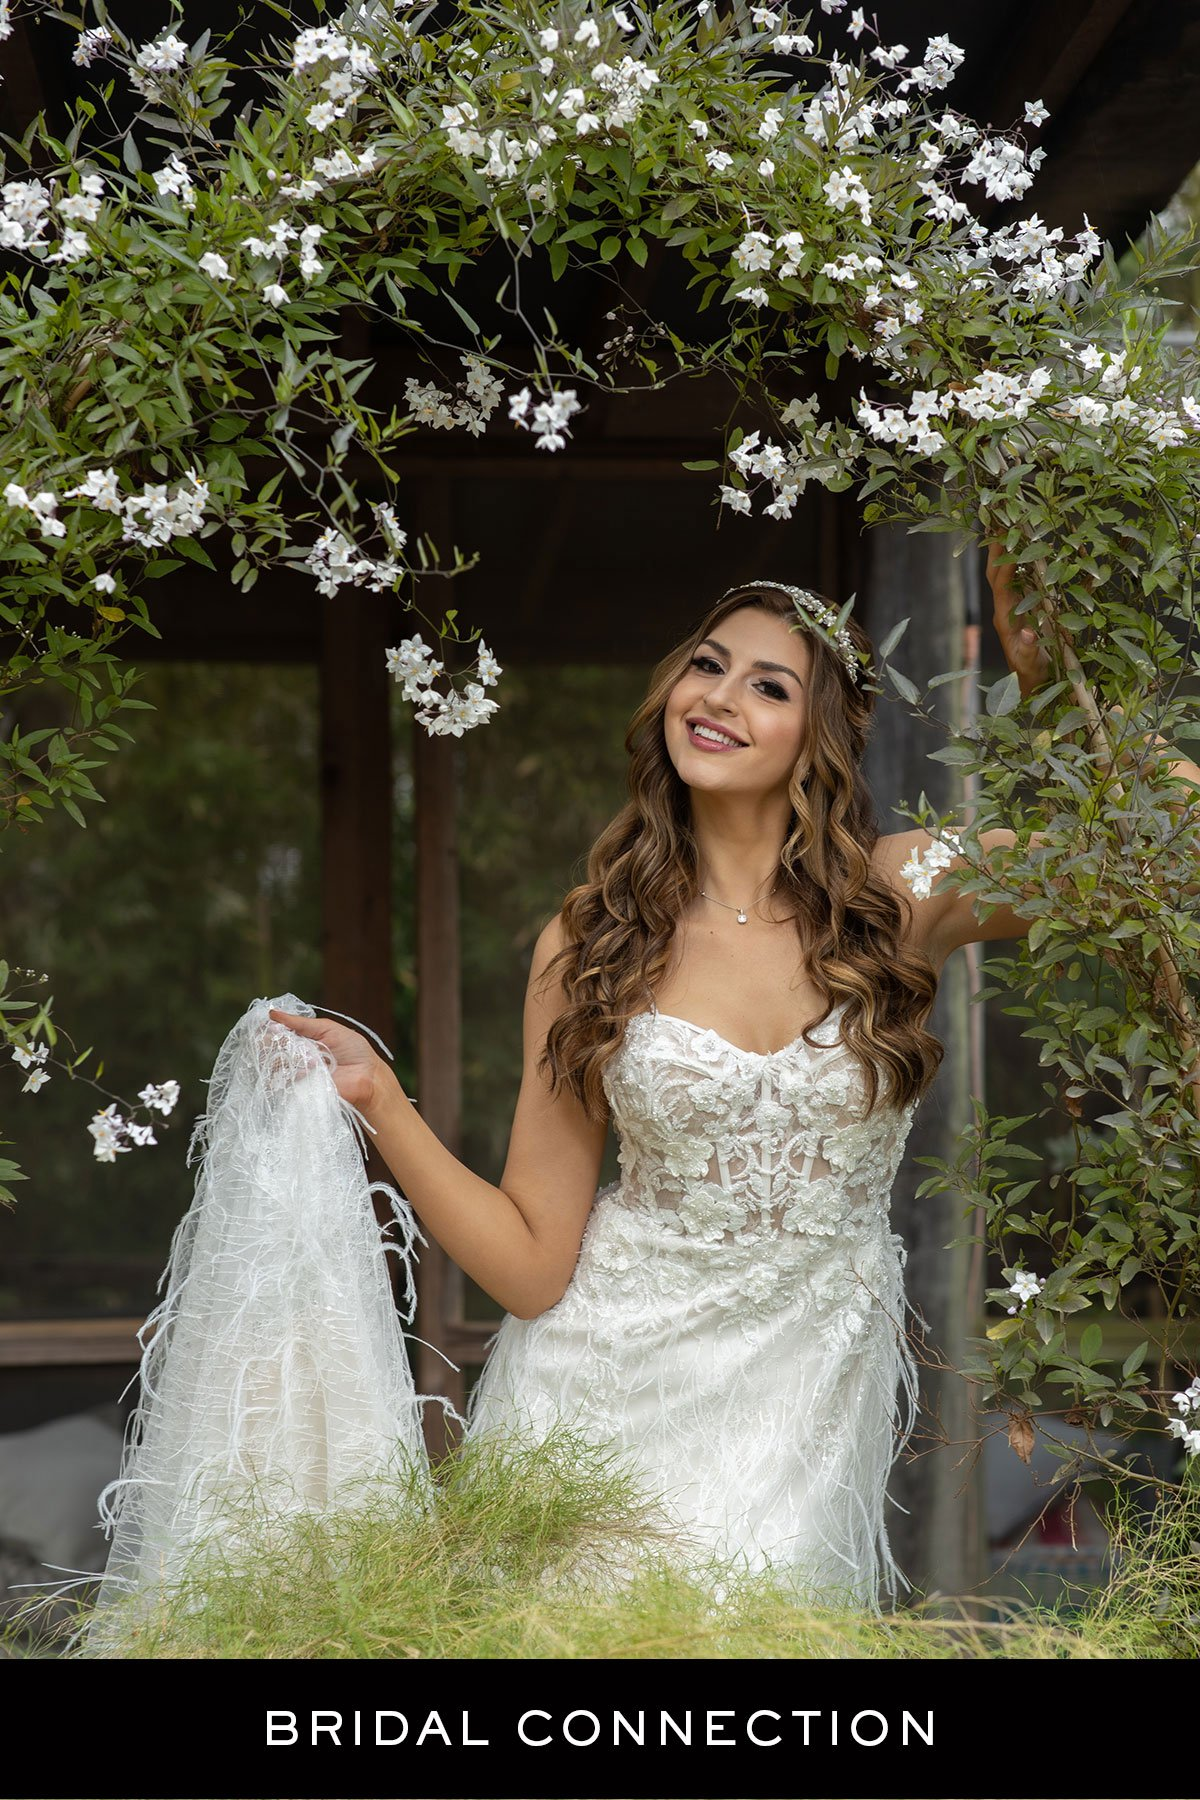 Bridal-Connection-Boquet-Shoot-San-Antonio-Weddings-2020-Mainc